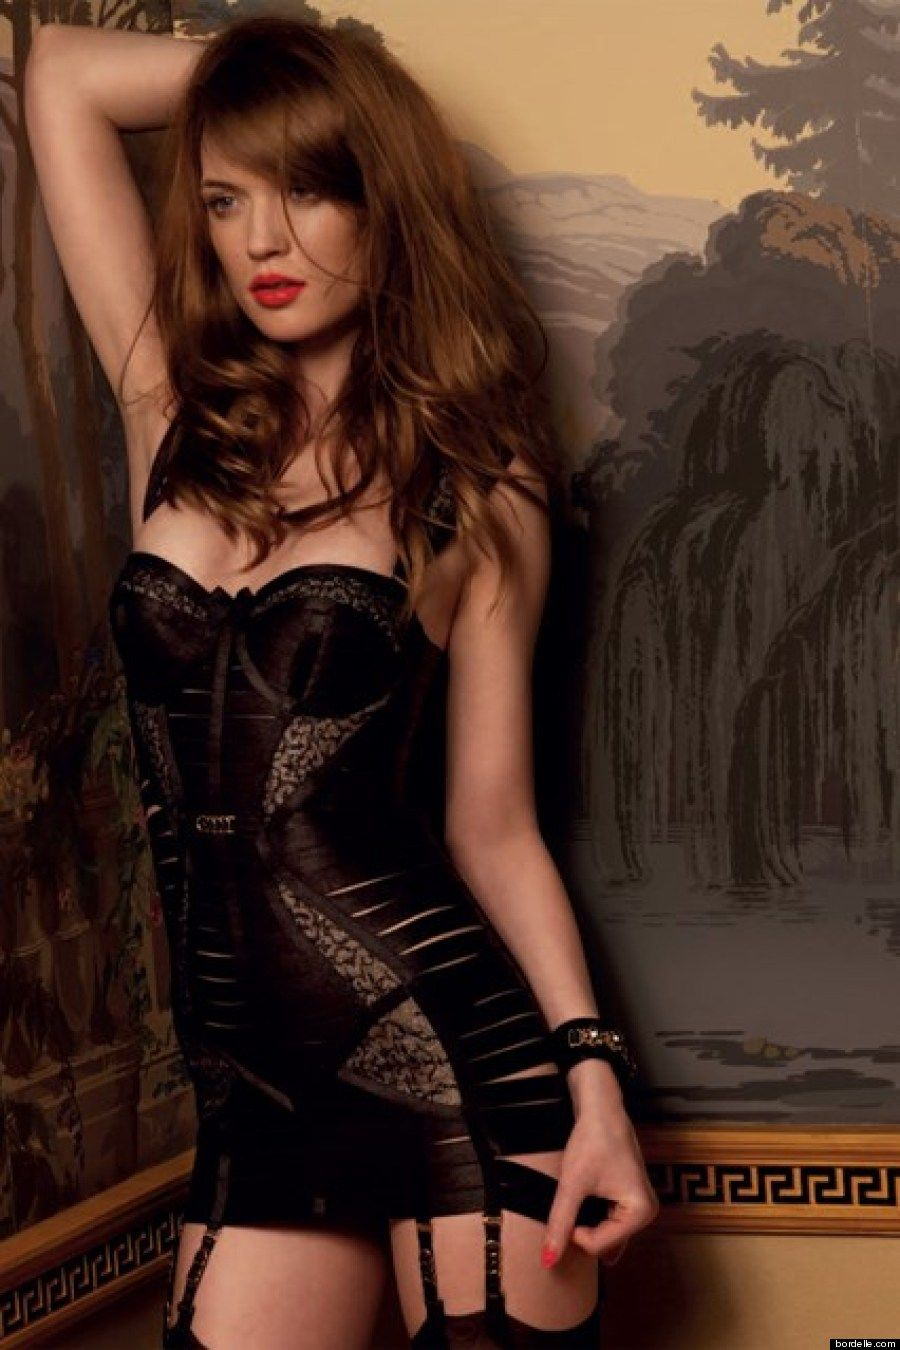 Most Expensive Lingerie  Bordelle Kicks Holidays Into High Gear With Naughty  Underwear b289316c9